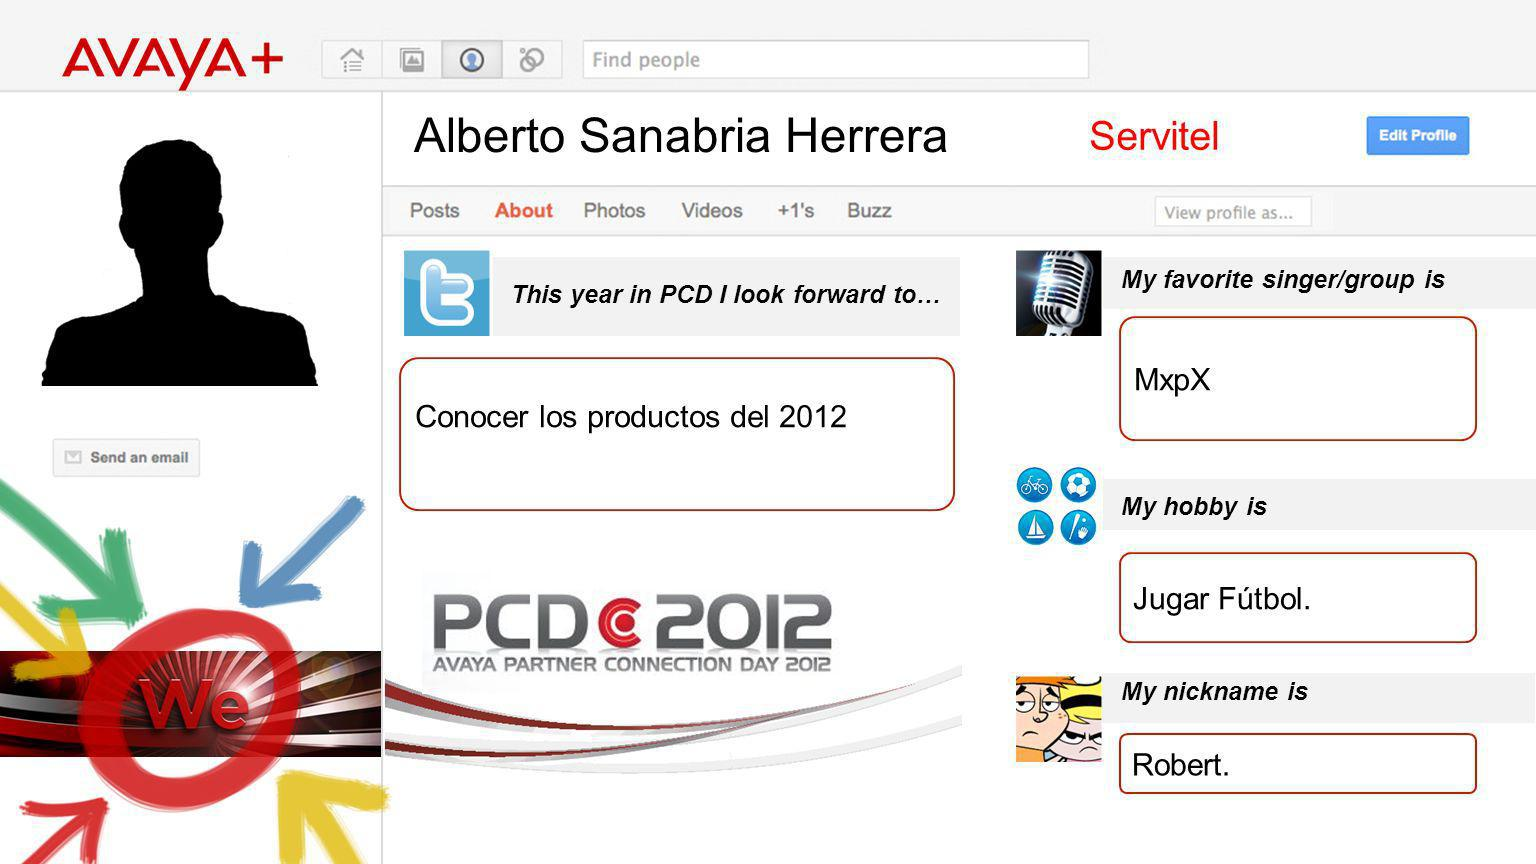 Alberto Sanabria Herrera This year in PCD I look forward to… Servitel Conocer los productos del 2012 My favorite singer/group is My hobby is My nickna